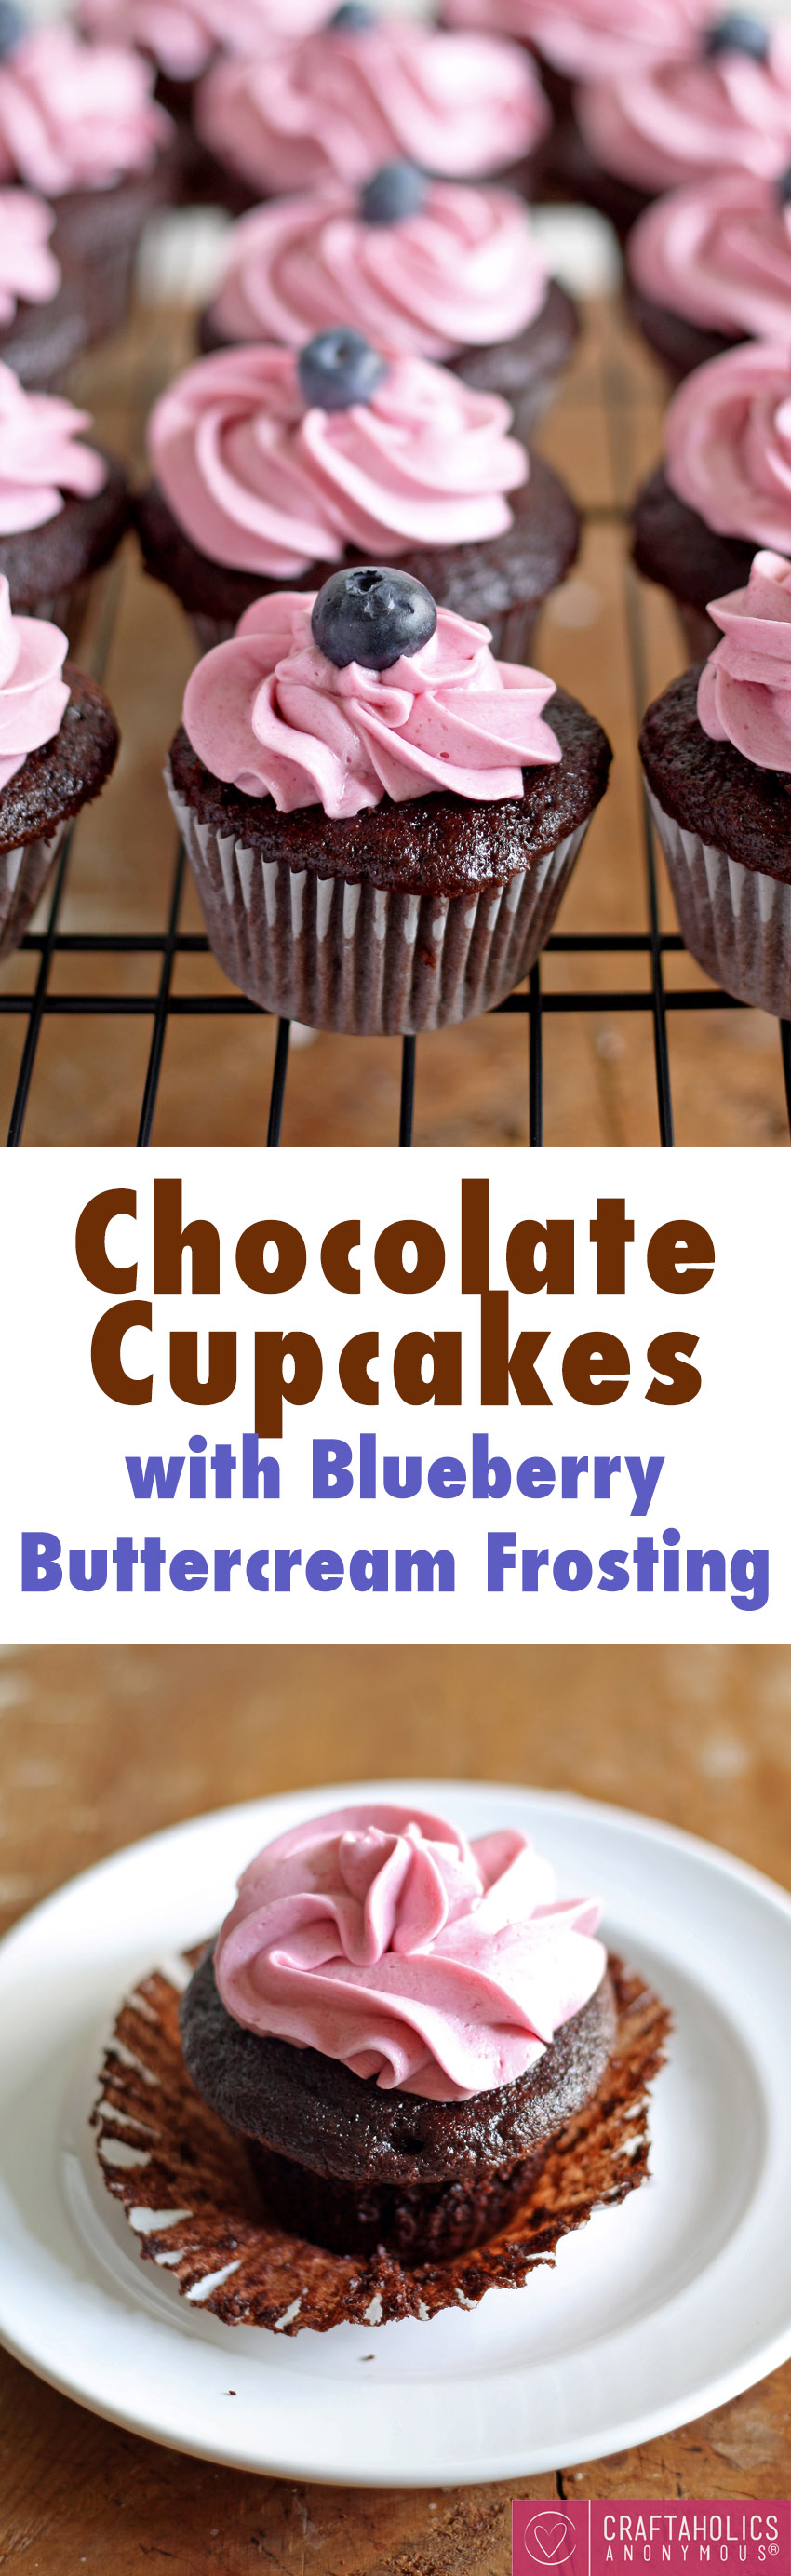 Chocolate Cupcakes with Blueberry Buttercream Frosting